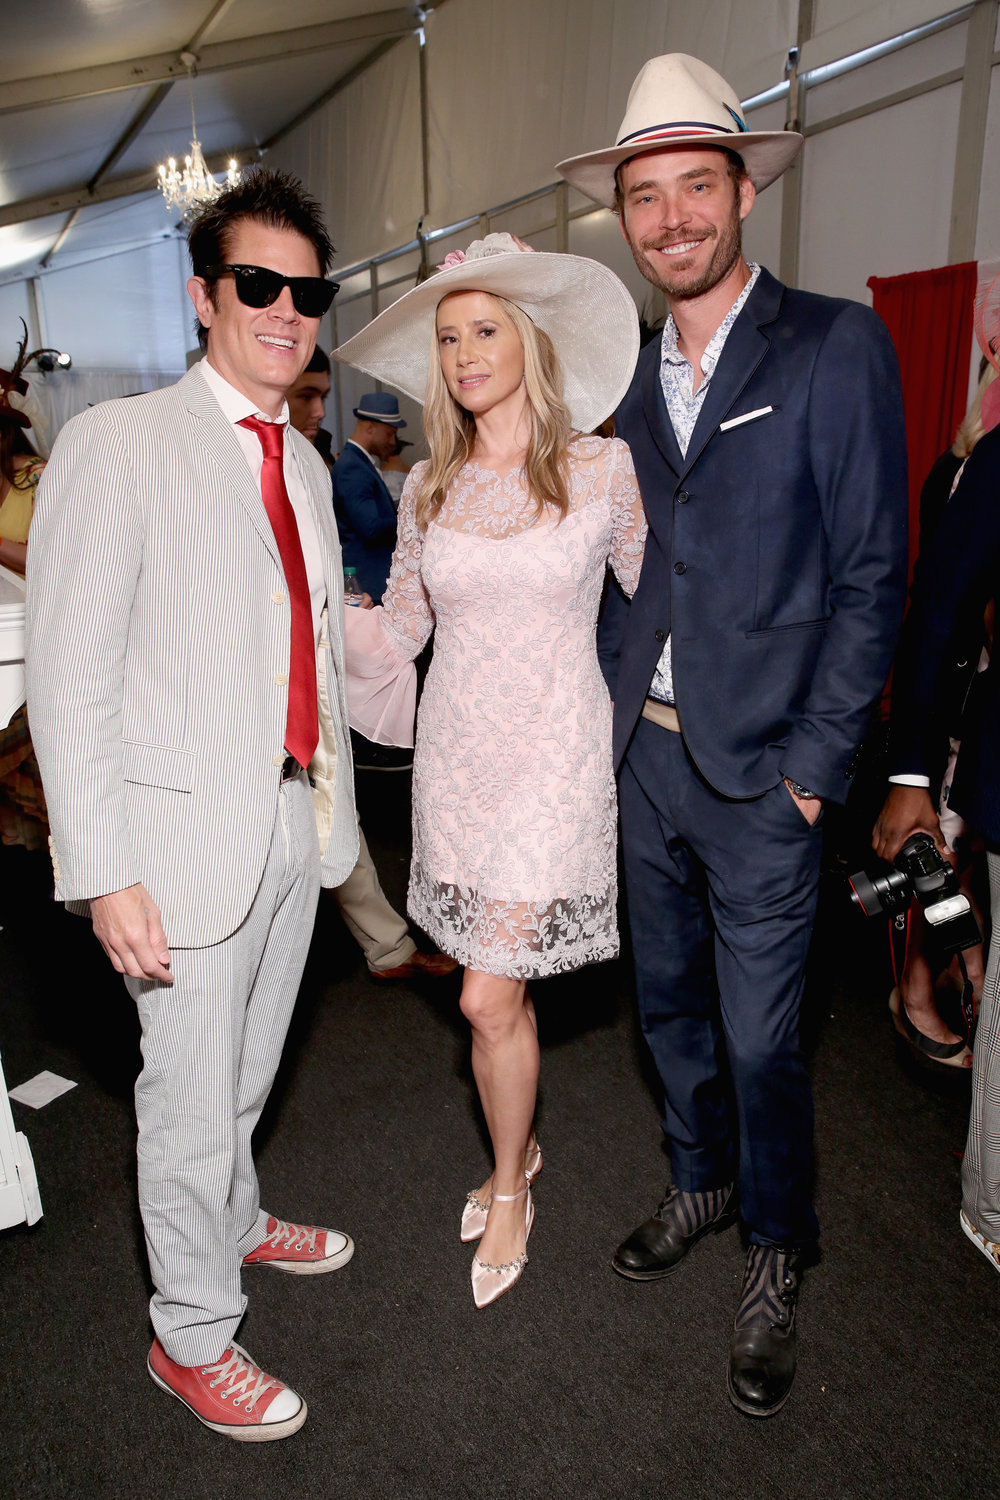 LOUISVILLE, KY - MAY 05:  Johnny Knoxville, Mira Sorvino and Christopher Backus attend Kentucky Derby 144 on May 5, 2018 in Louisville, Kentucky.  (Photo by Robin Marchant/Getty Images for Churchill Downs) *** Local Caption *** Christopher Backus;Mira Sorvino;Johnny Knoxville